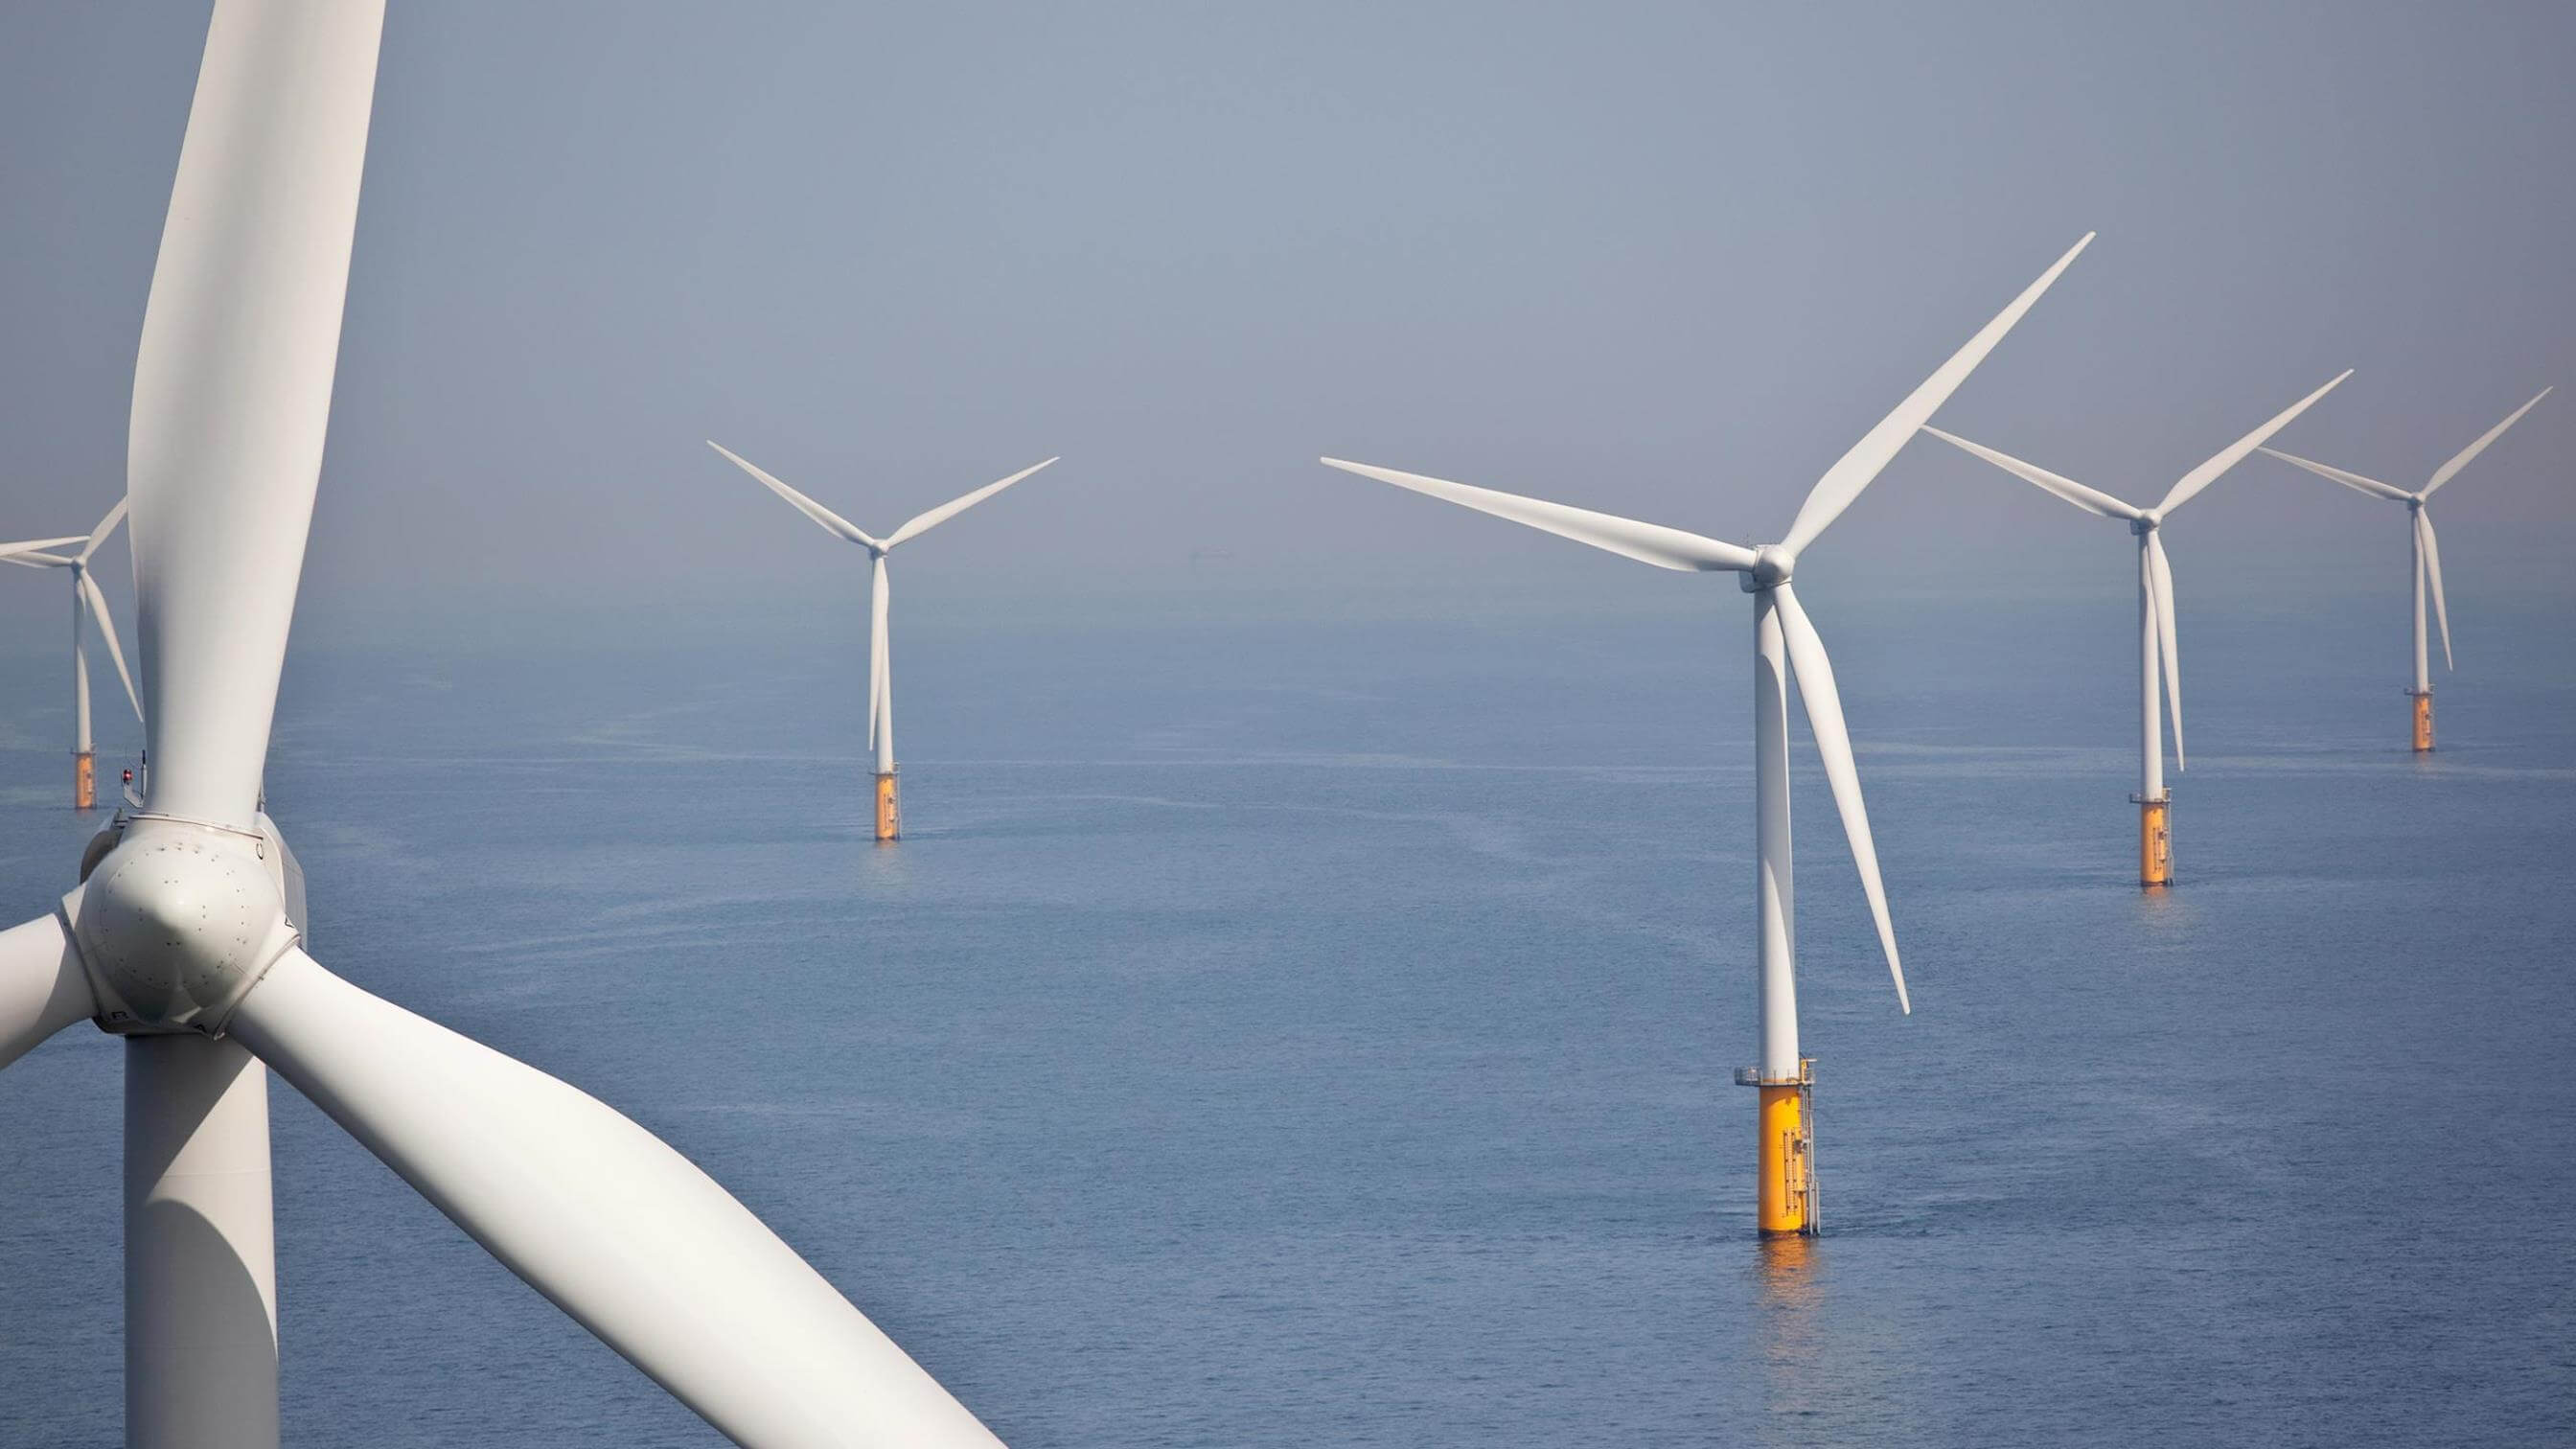 Powering an offshore wind farm